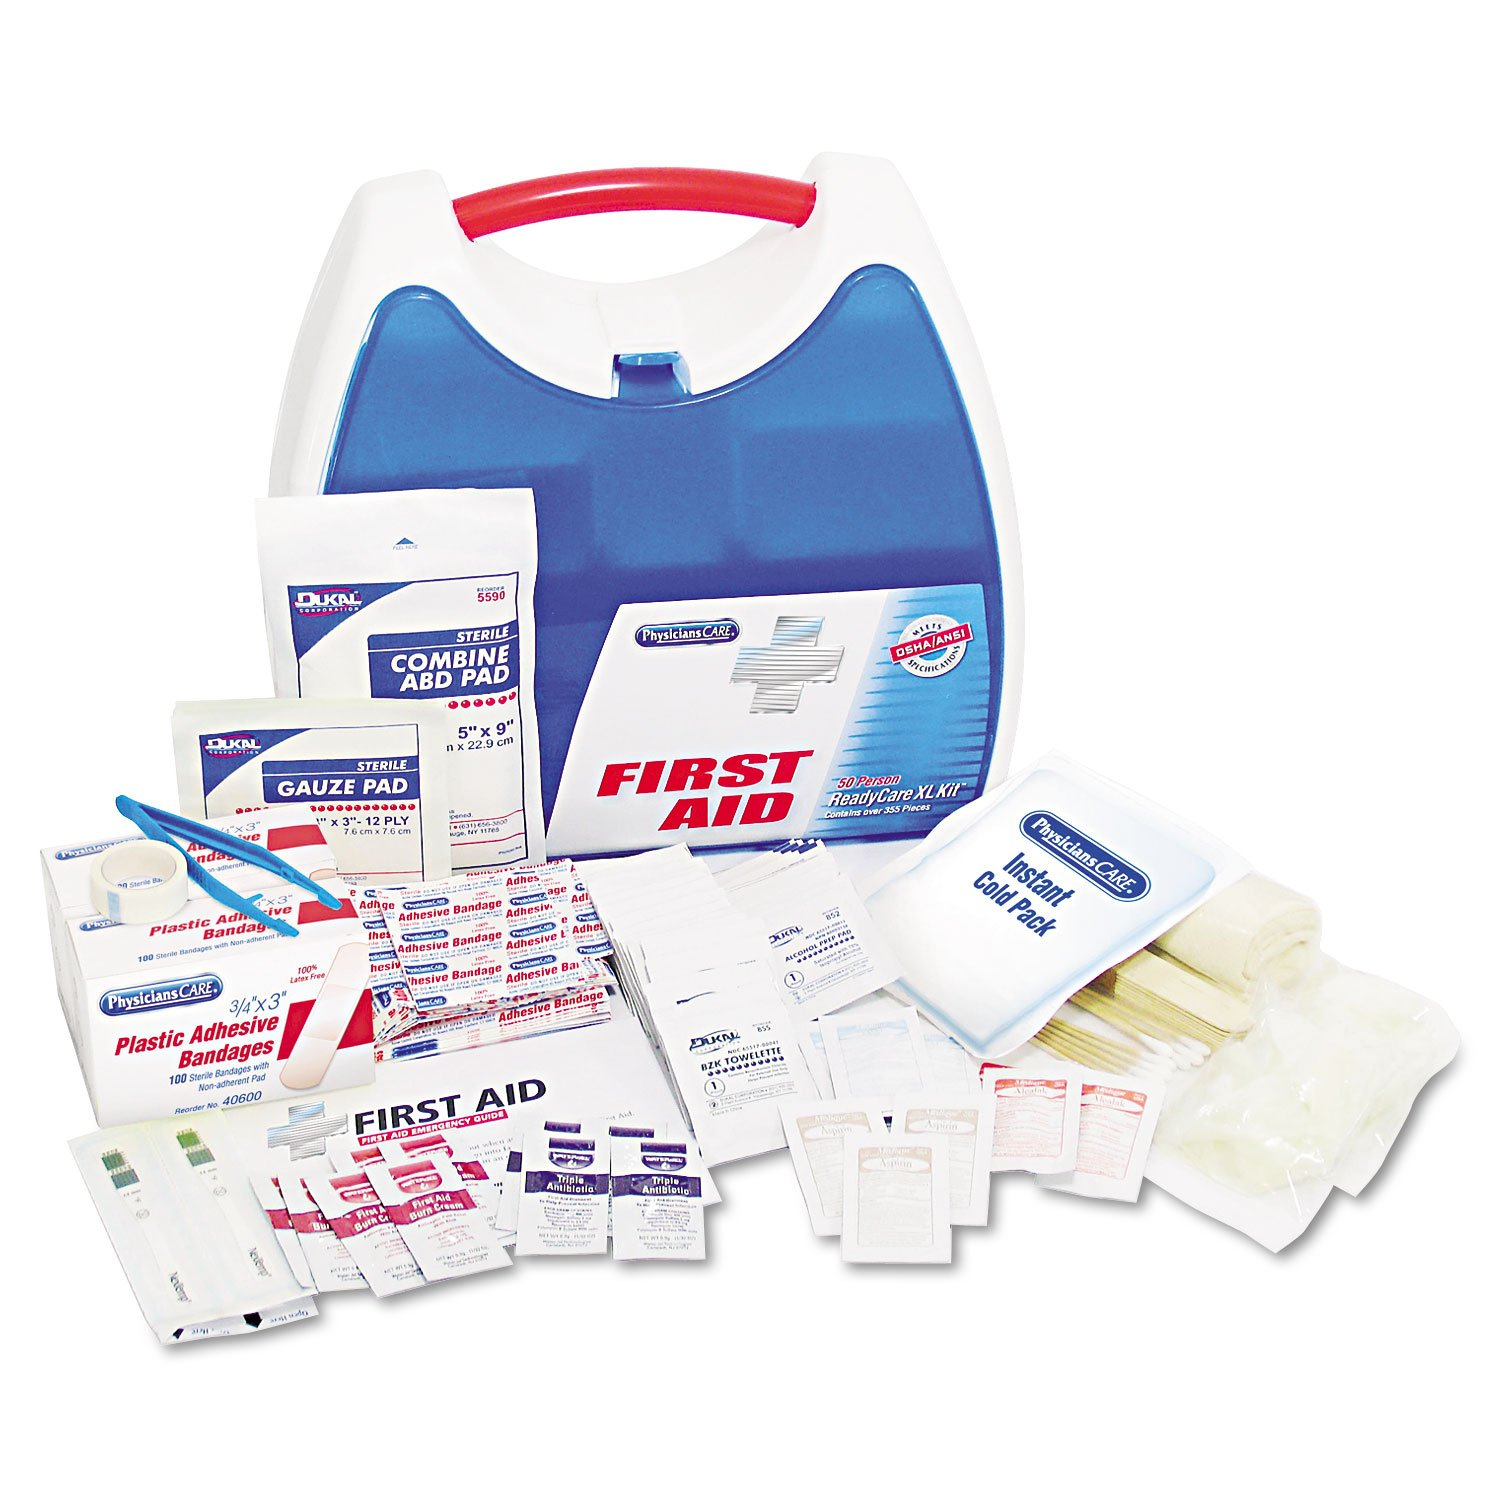 ACM90122 - PhysiciansCARE ReadyCare First Aid Kit for up to 50 People